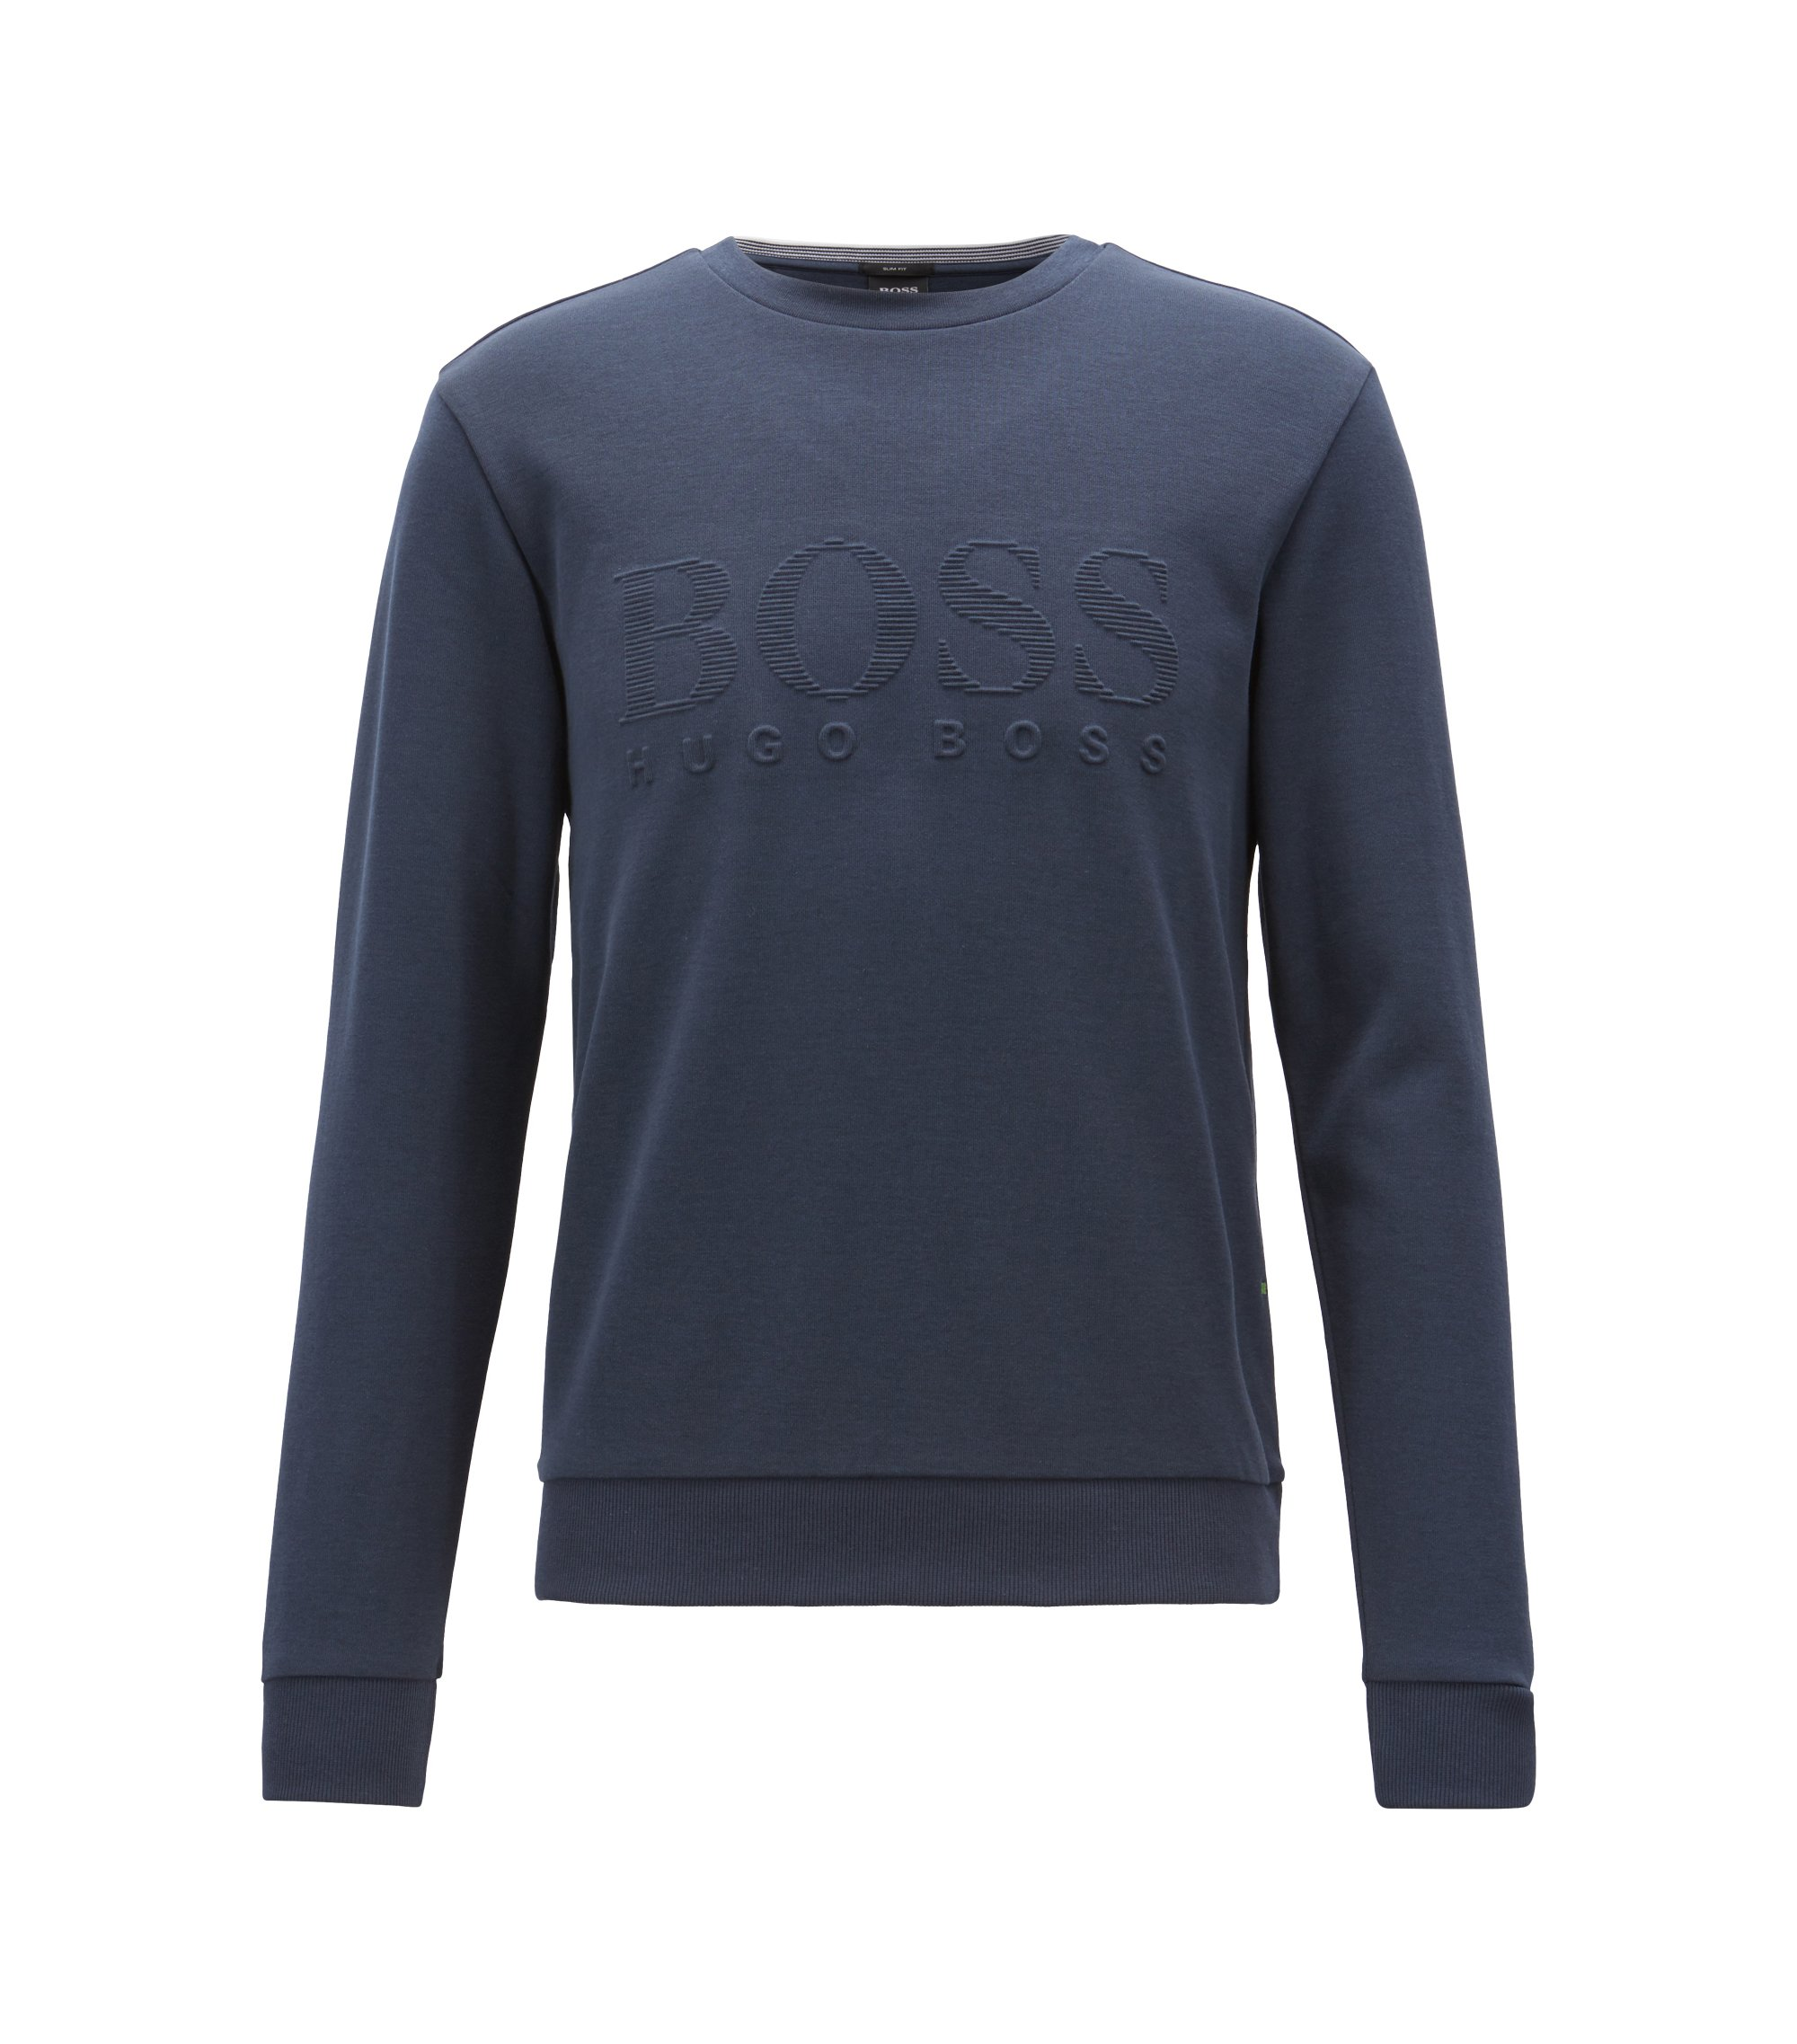 Slim-fit sweatshirt with tonal embossed logo, Dunkelblau